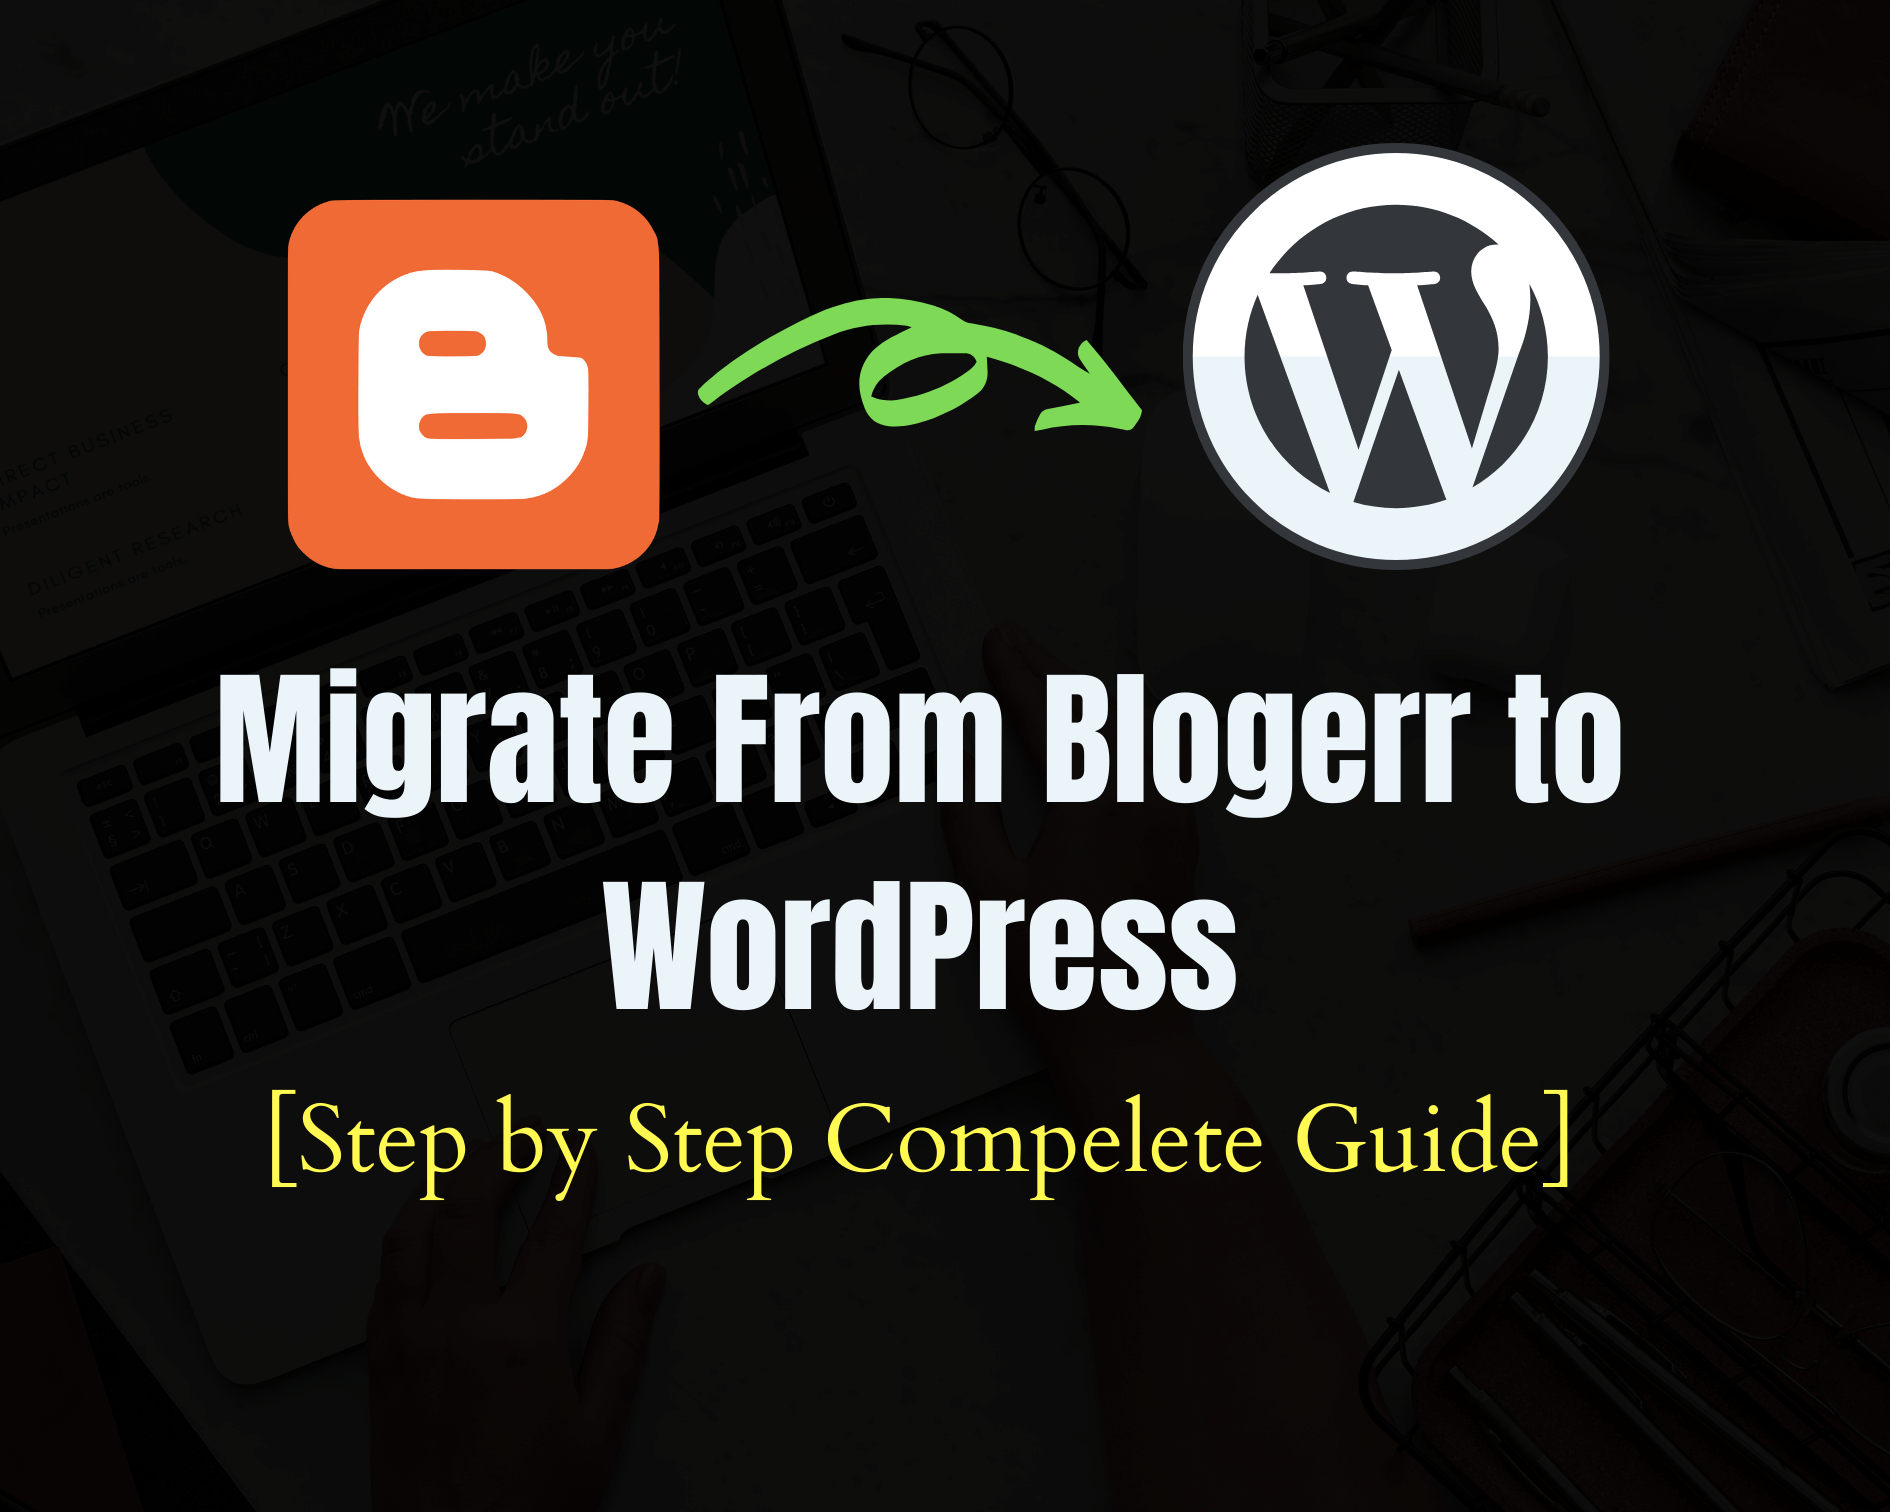 How to Migrate from Blogger to WordPress (Step-by-Step Guide)